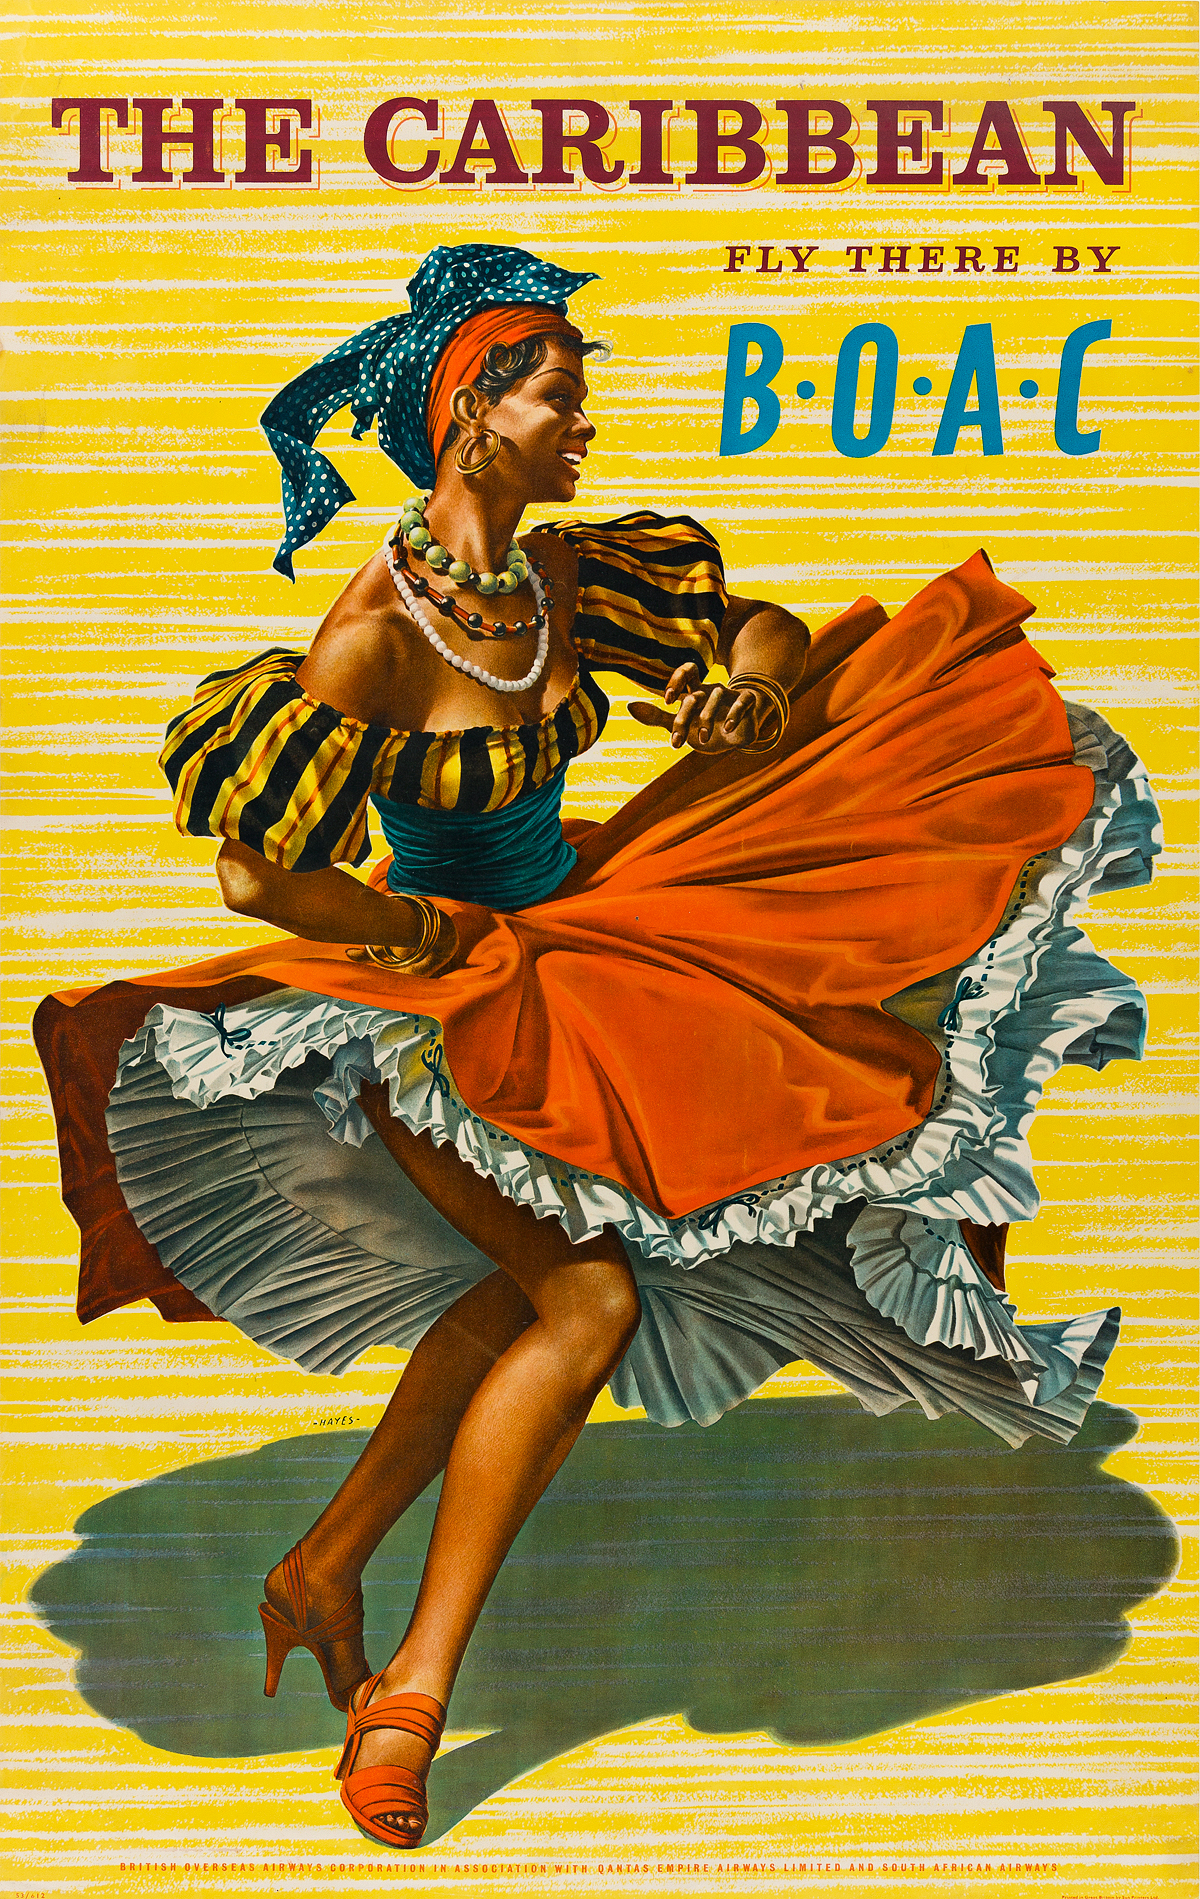 HAYES-(DATES-UNKNOWN)-THE-CARIBBEAN--FLY-THERE-BY-BOAC-1953-